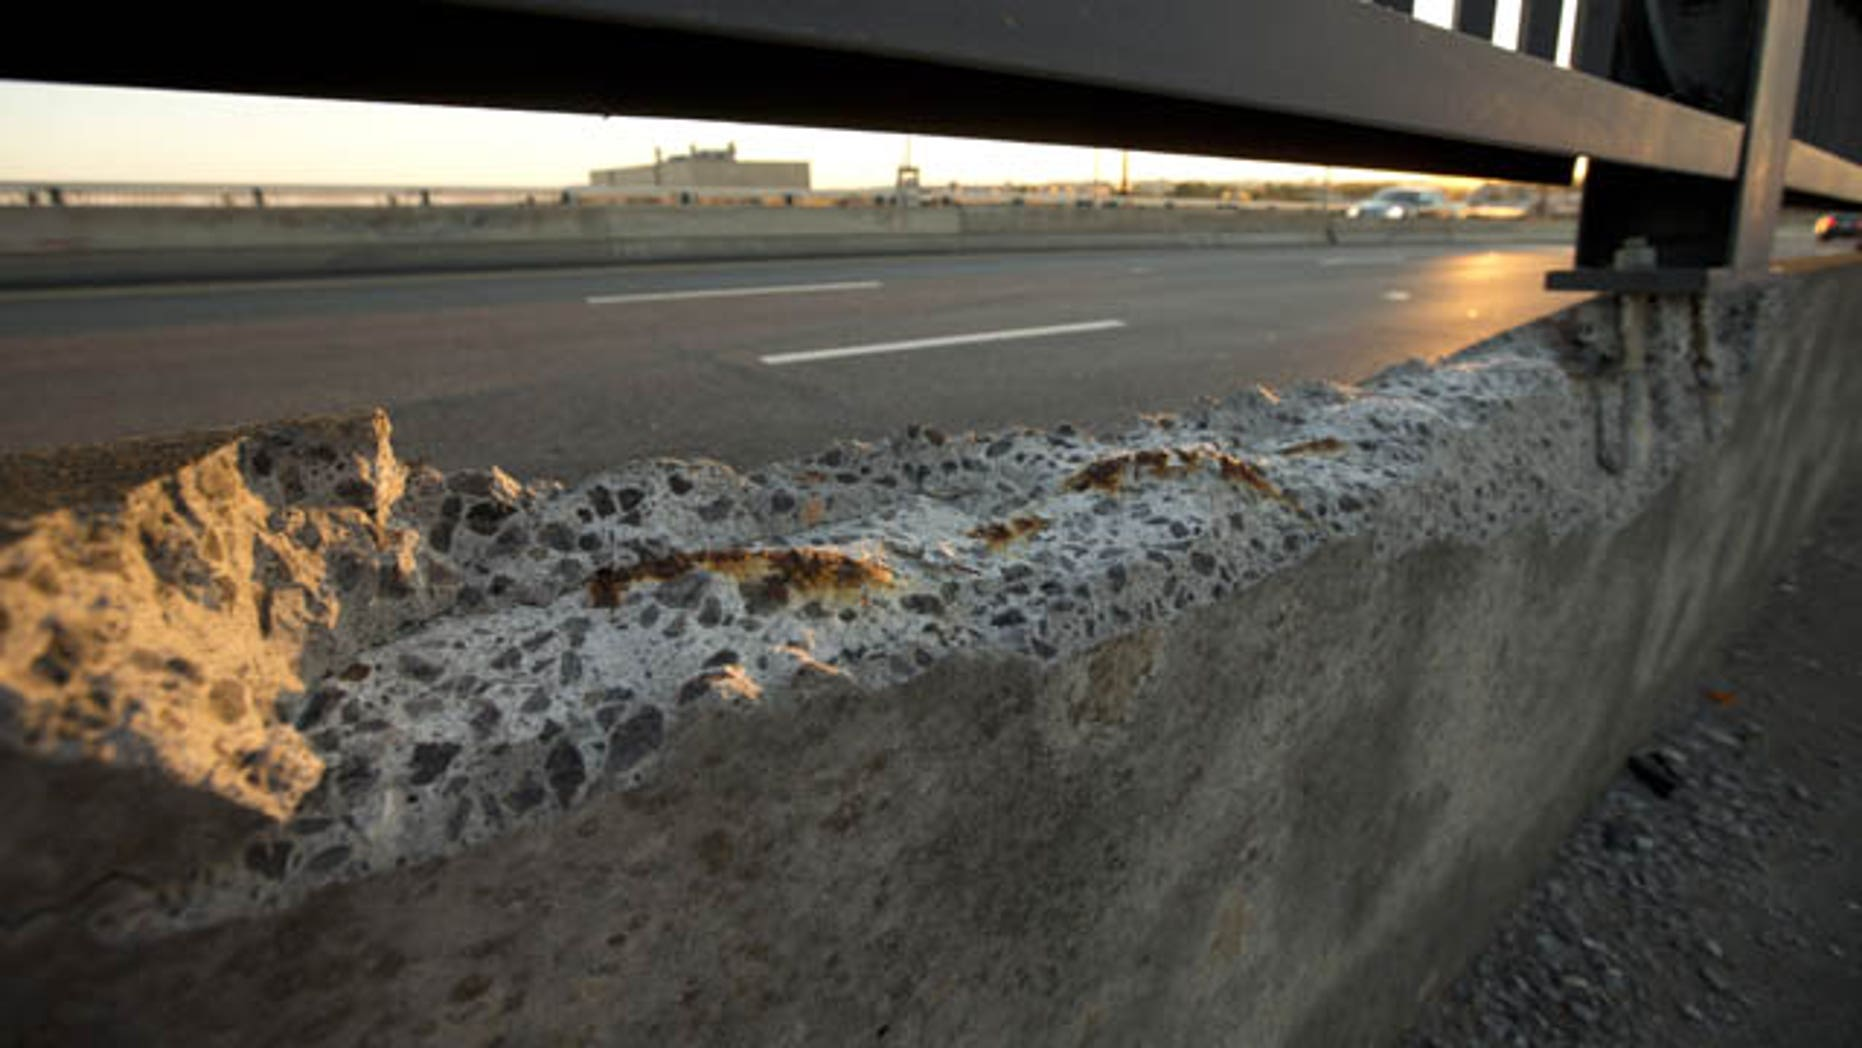 September 4, 2013: Cracked concrete exposes parts of reinforcement bars on the Frederick Douglass Memorial Bridge which spans the Anacostia River in Washington.